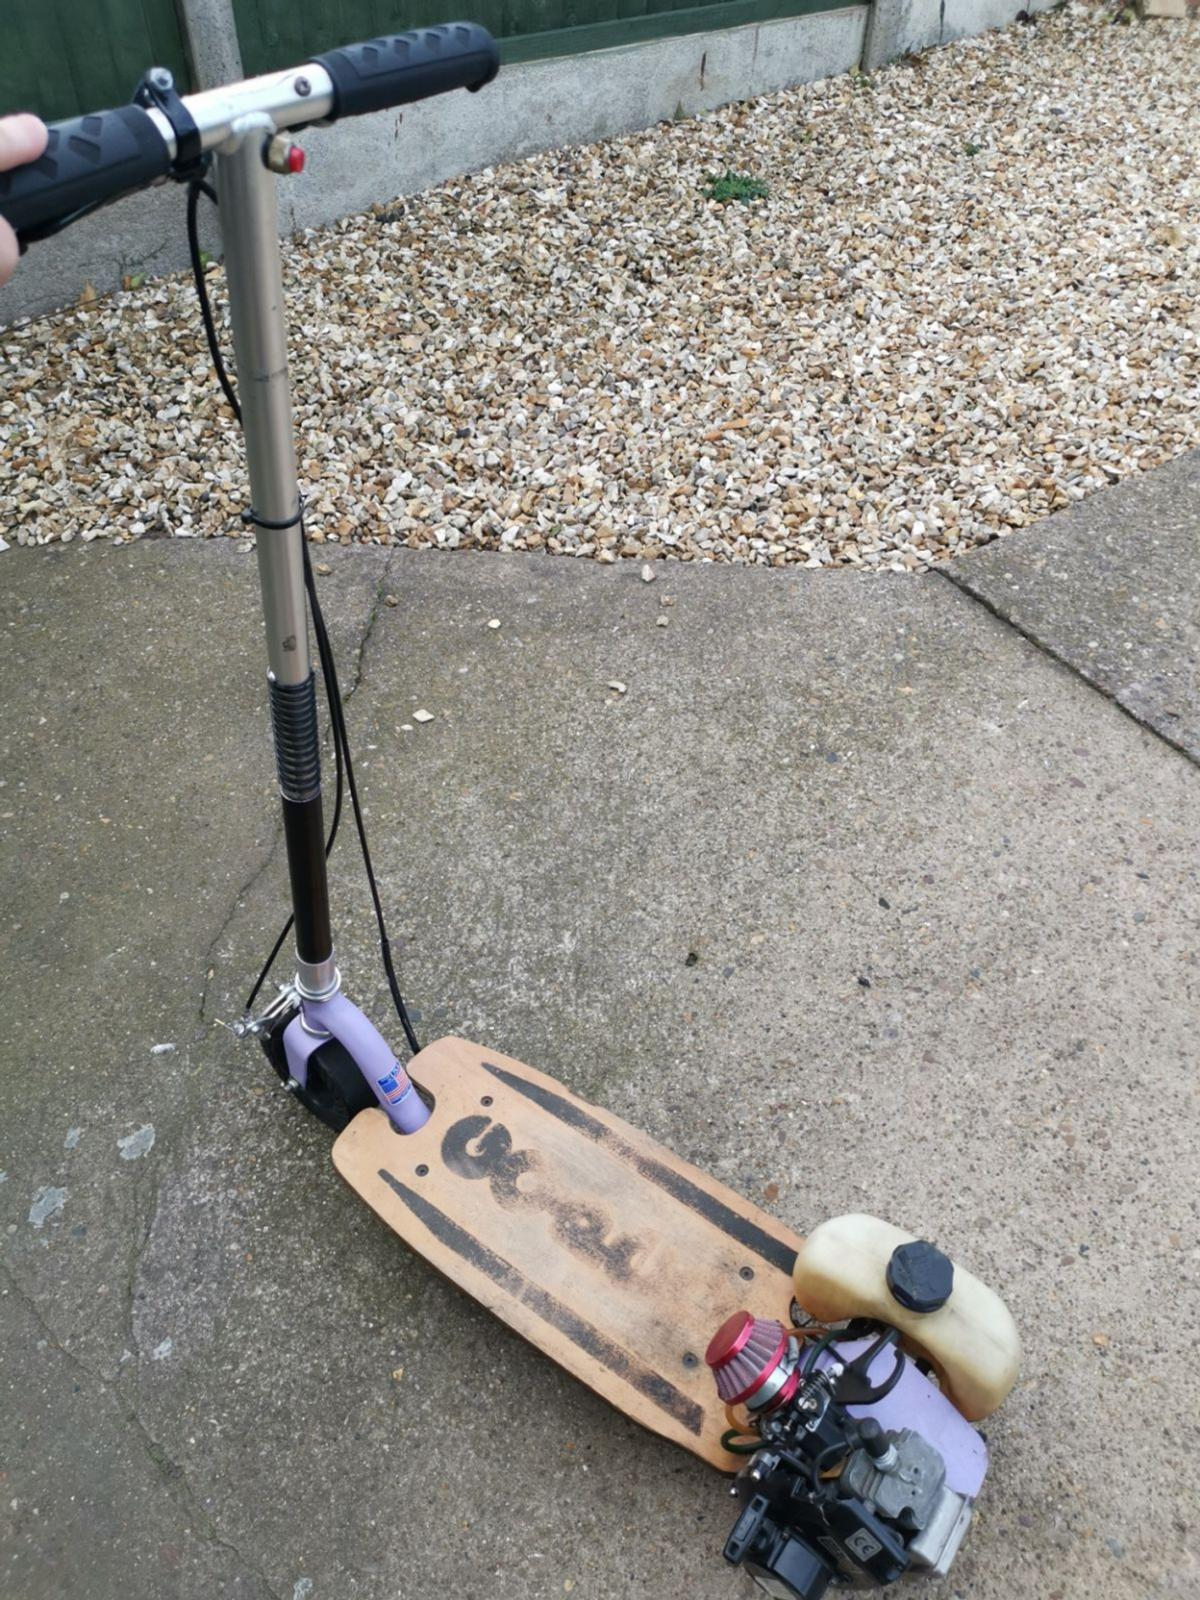 Go-Ped petrol scooter 2 stroke in DN21 Lindsey for £200 00 for sale